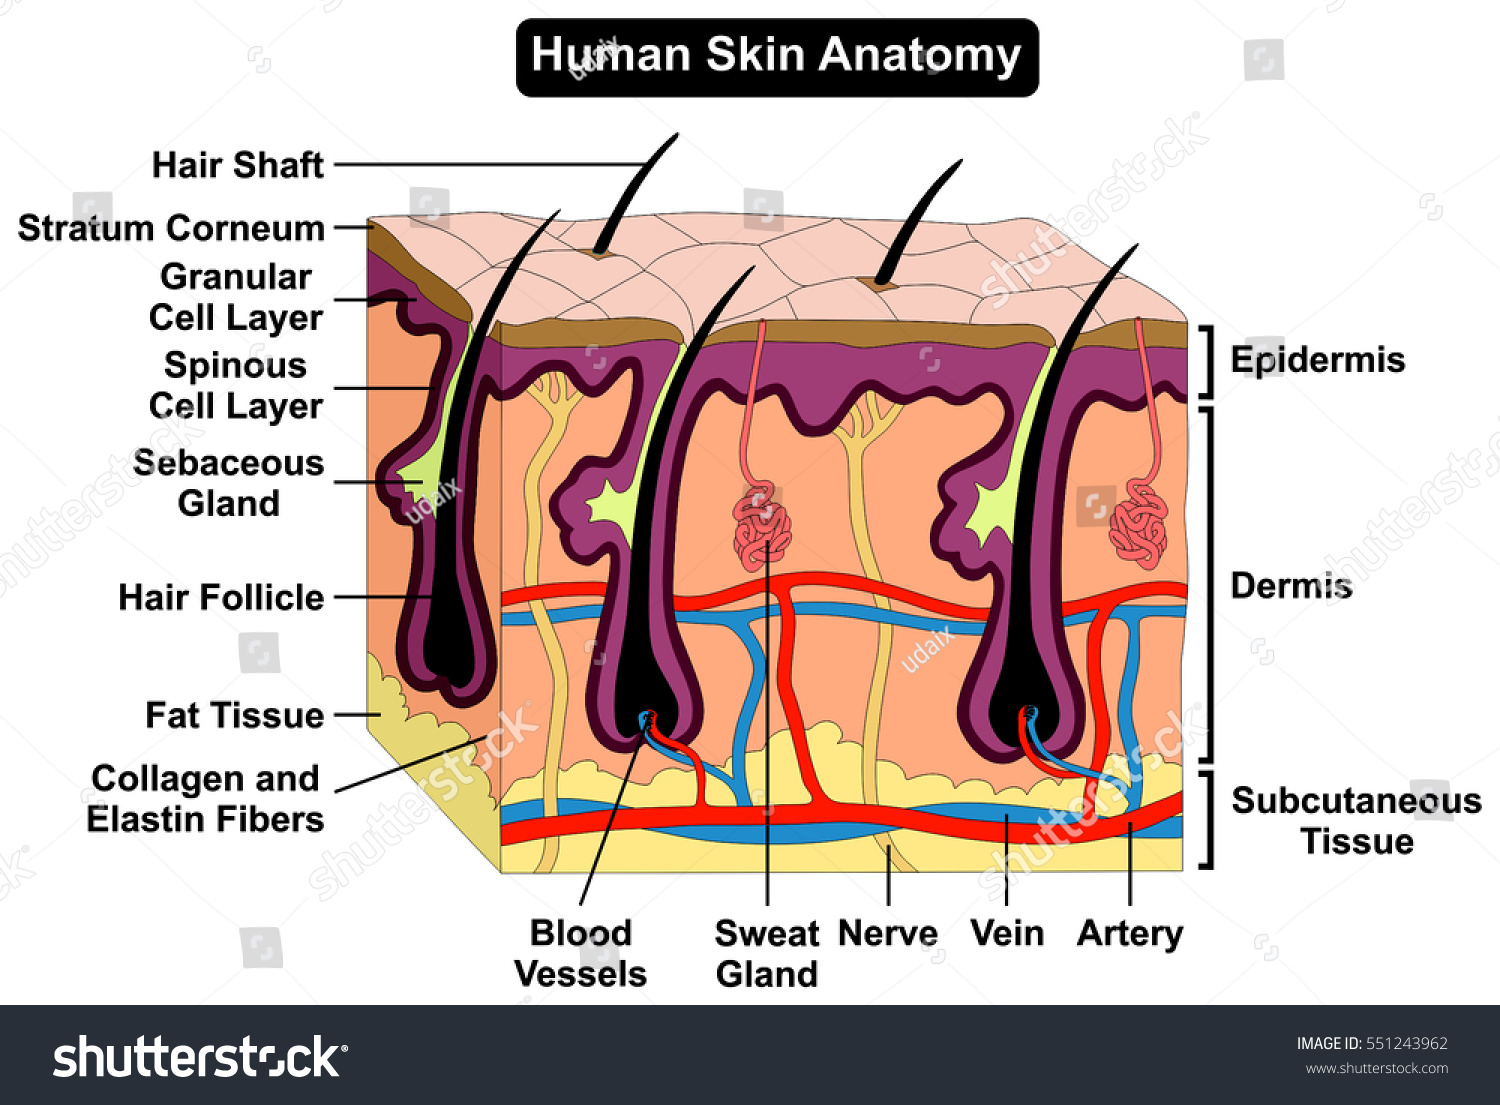 Human Skin Anatomy Cross Section Diagram Stock Illustration ...